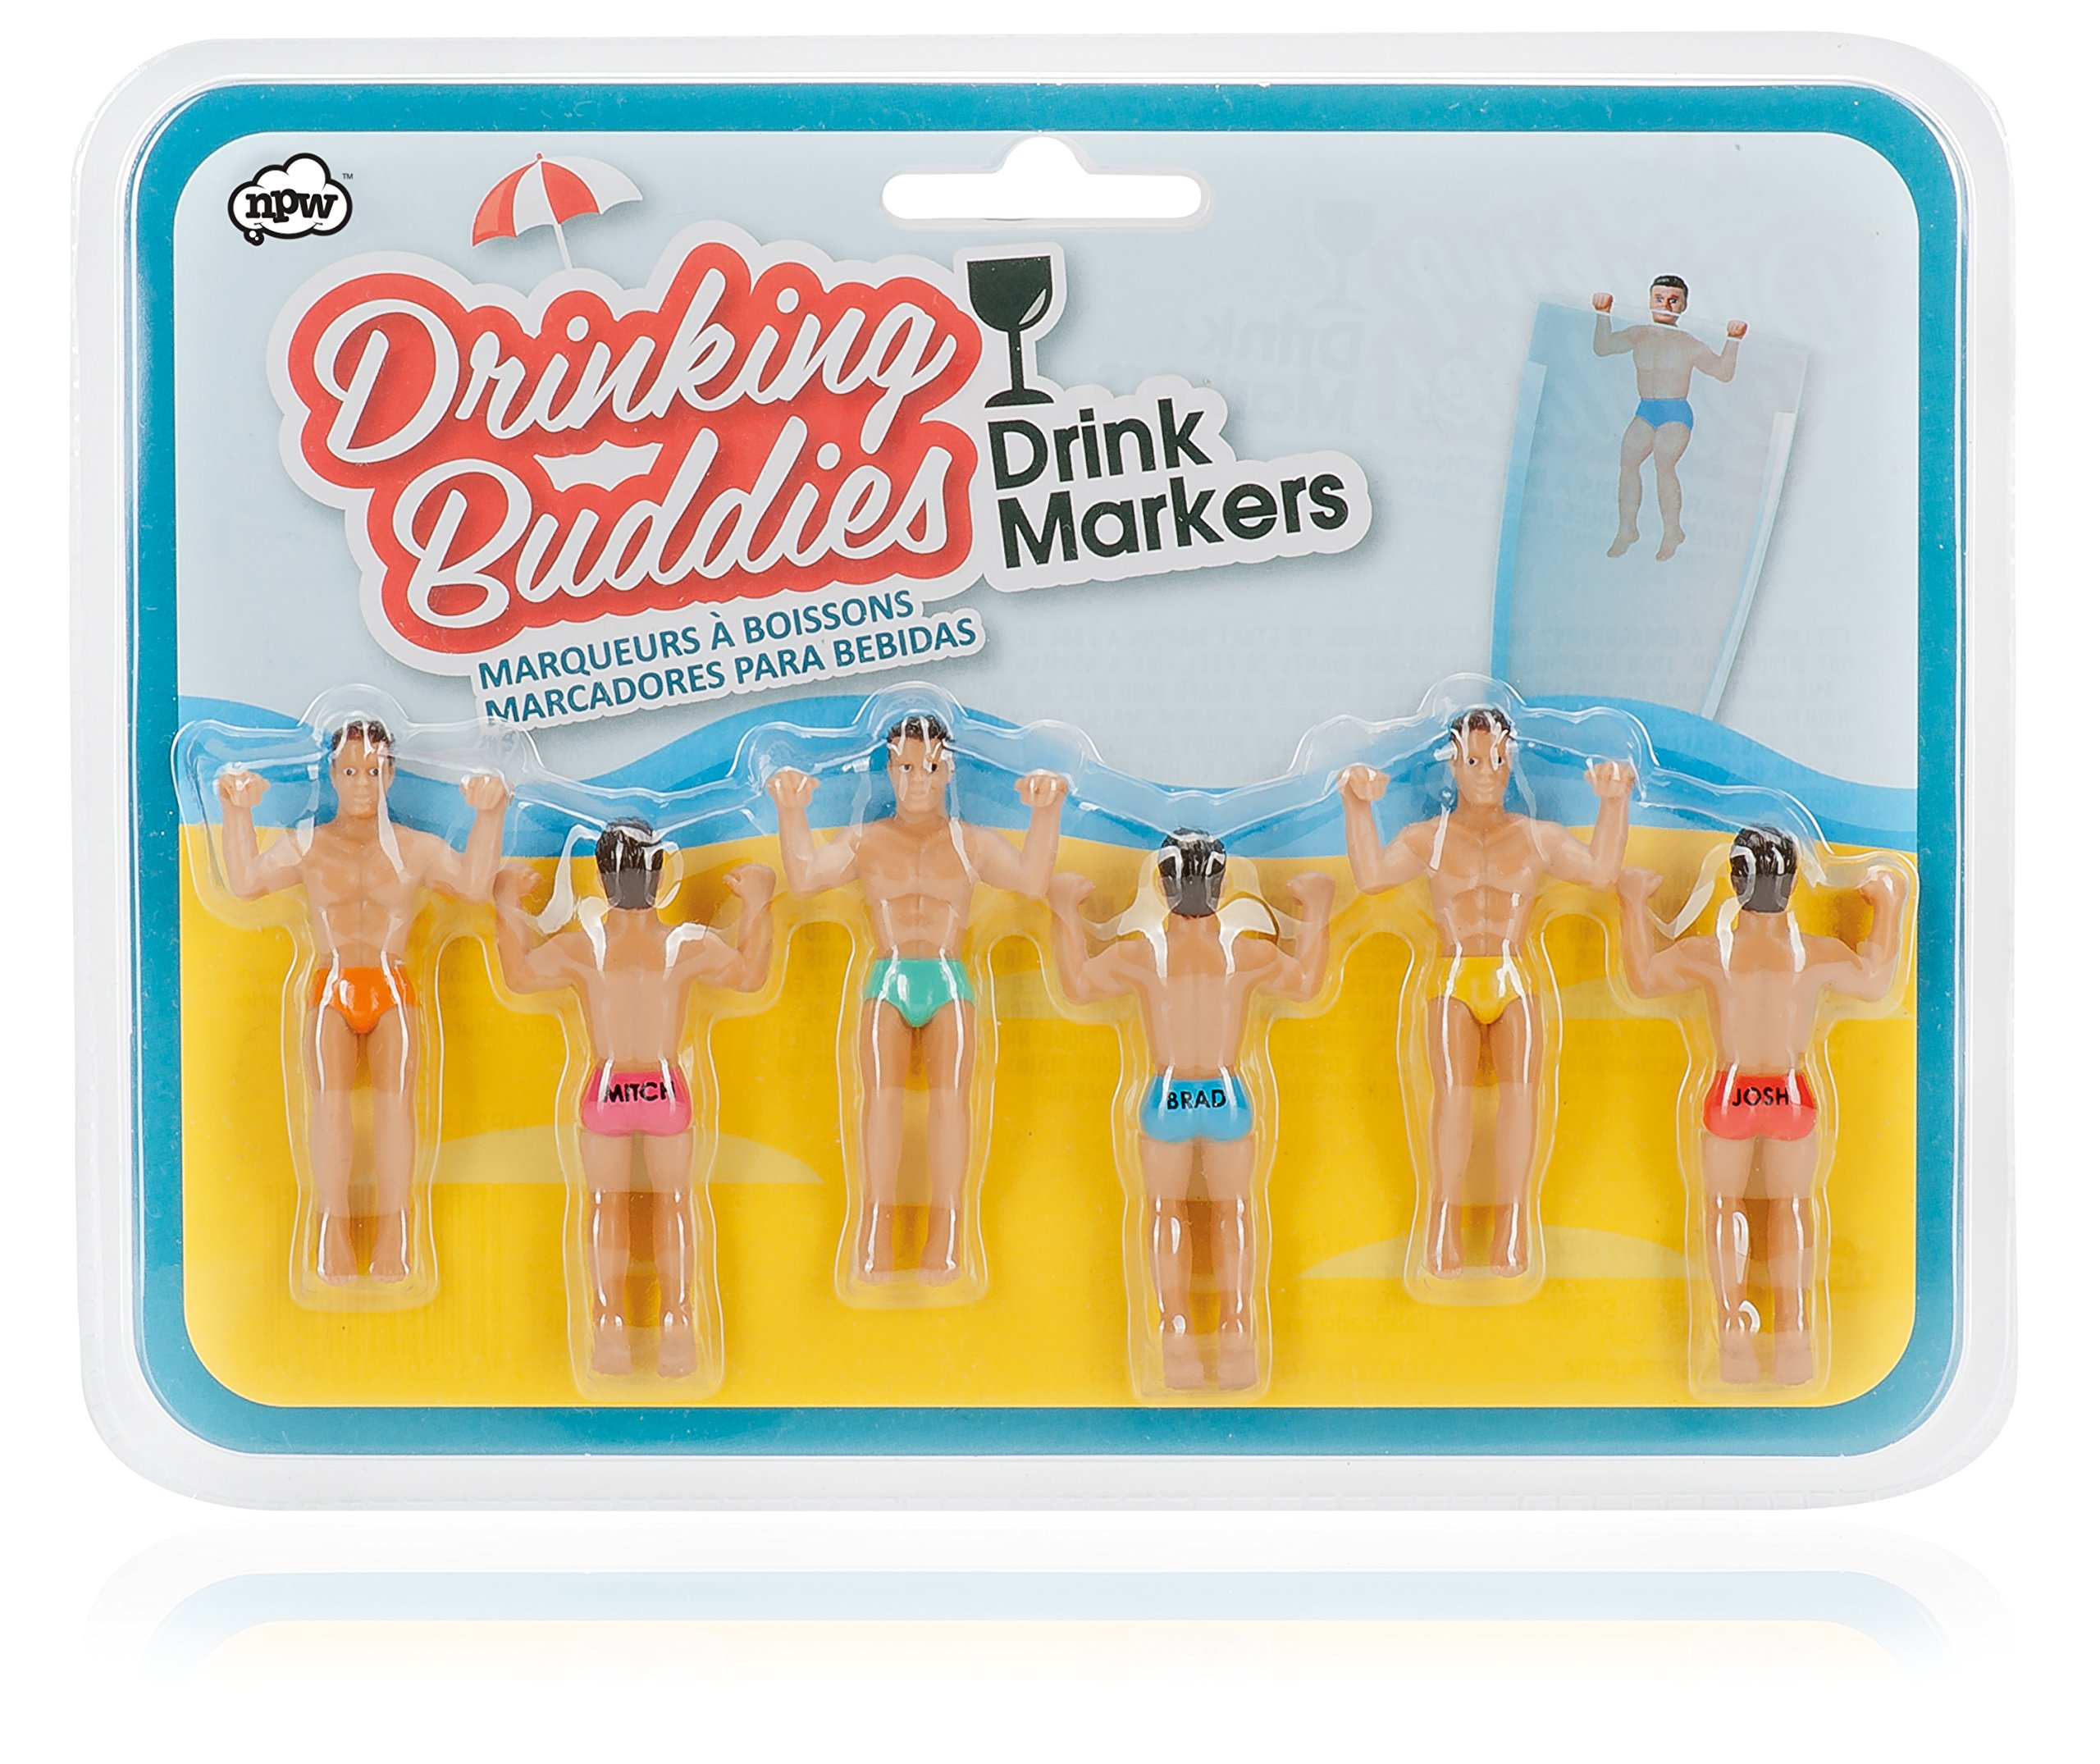 NPW Drinking Buddies Cocktail/Wine Glass Markers, 6-Count, Classic by NPW-USA